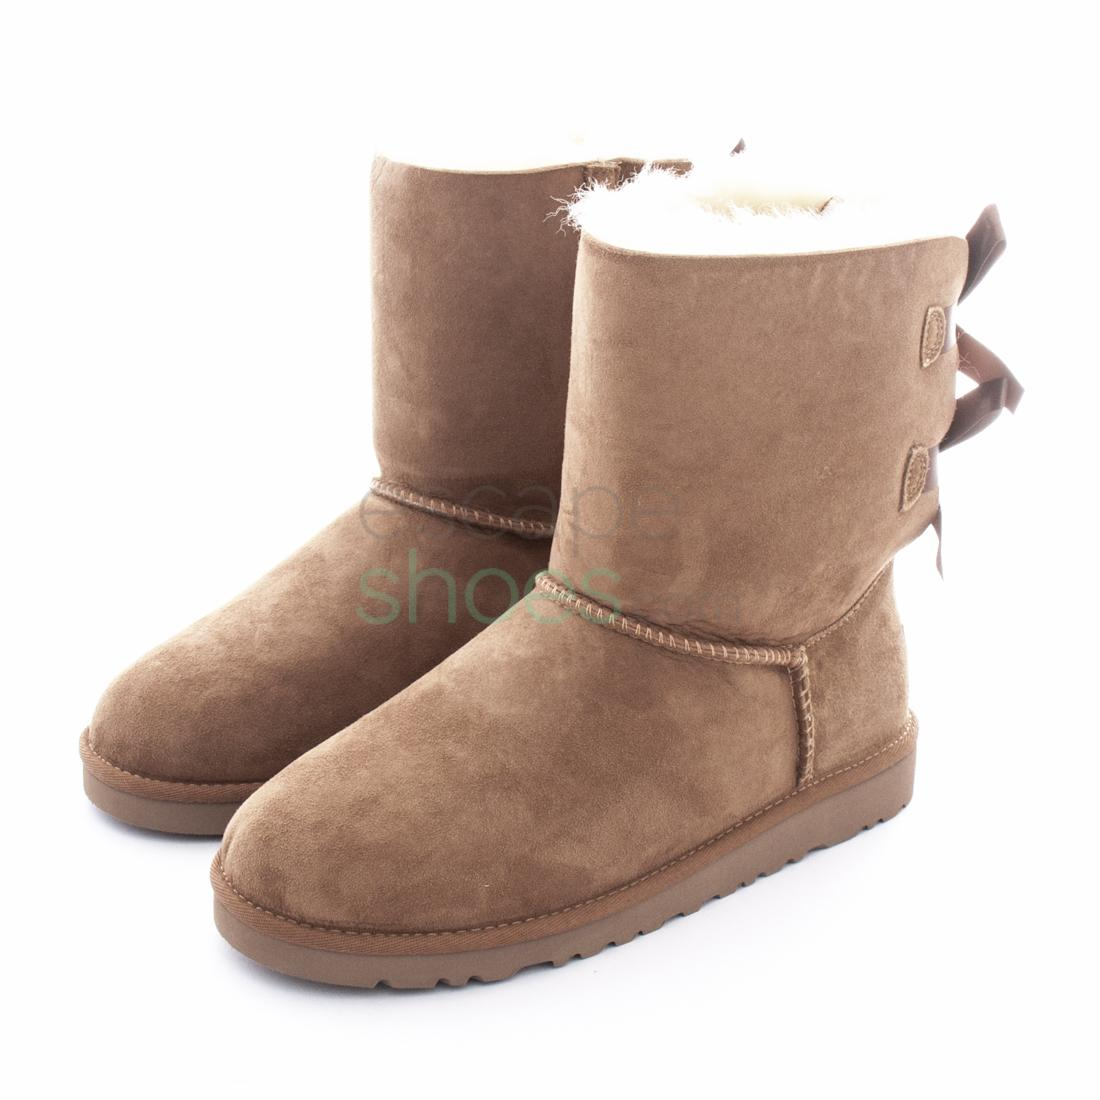 adc432830b2 Buy your Boots UGG Australia Bailey Bow Chestnut 3280Y CHE here ...